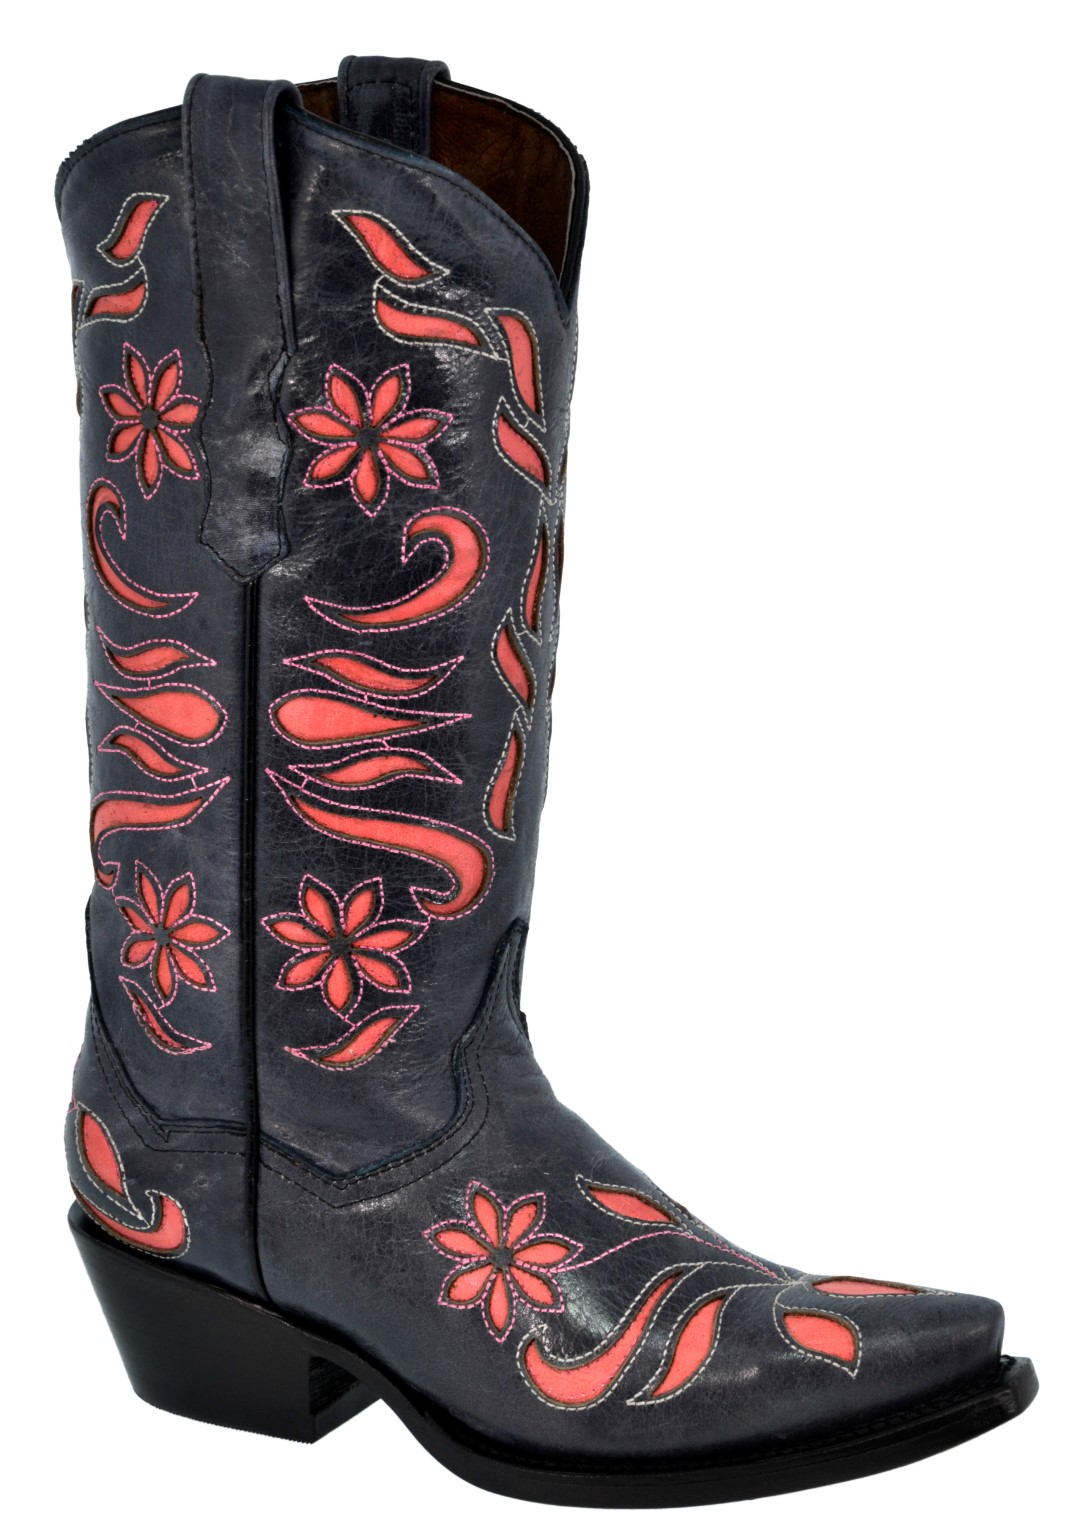 Donna Flower Inlay Western Wear Cowgirl Stivali Pelle Rodeo Rodeo Rodeo Snip Toe 1572d4